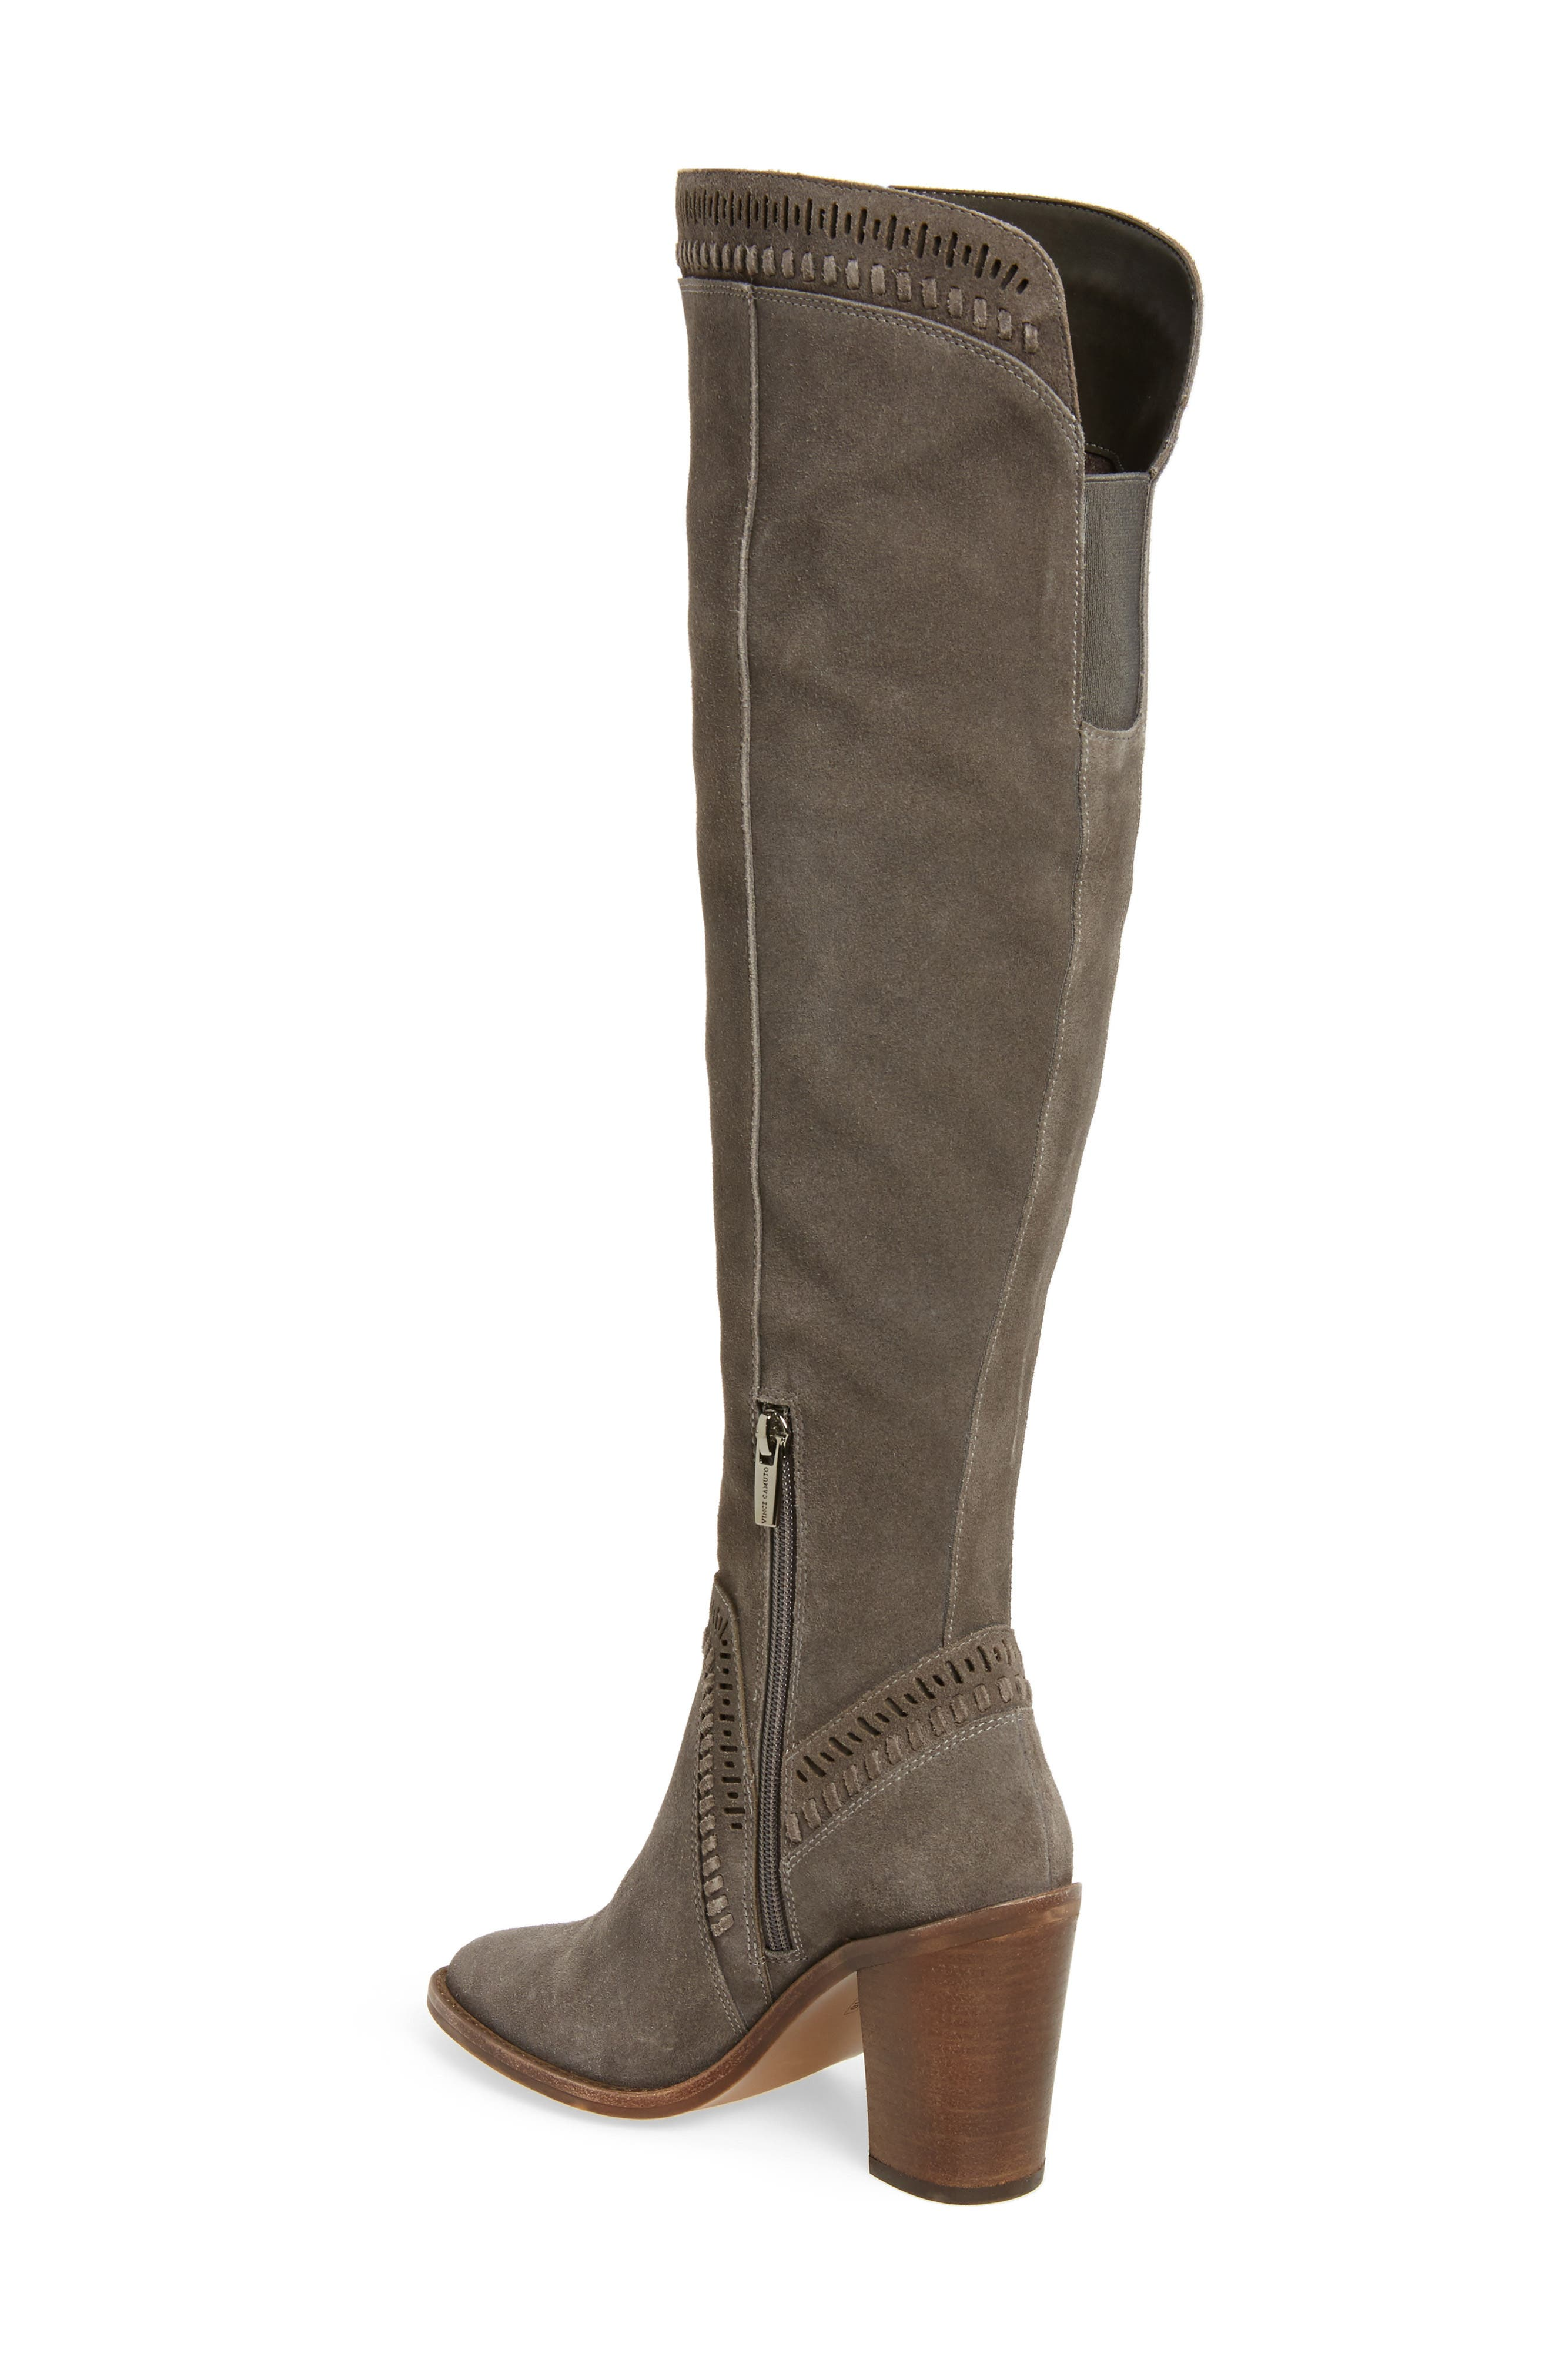 Madolee Over the Knee Boot,                             Alternate thumbnail 6, color,